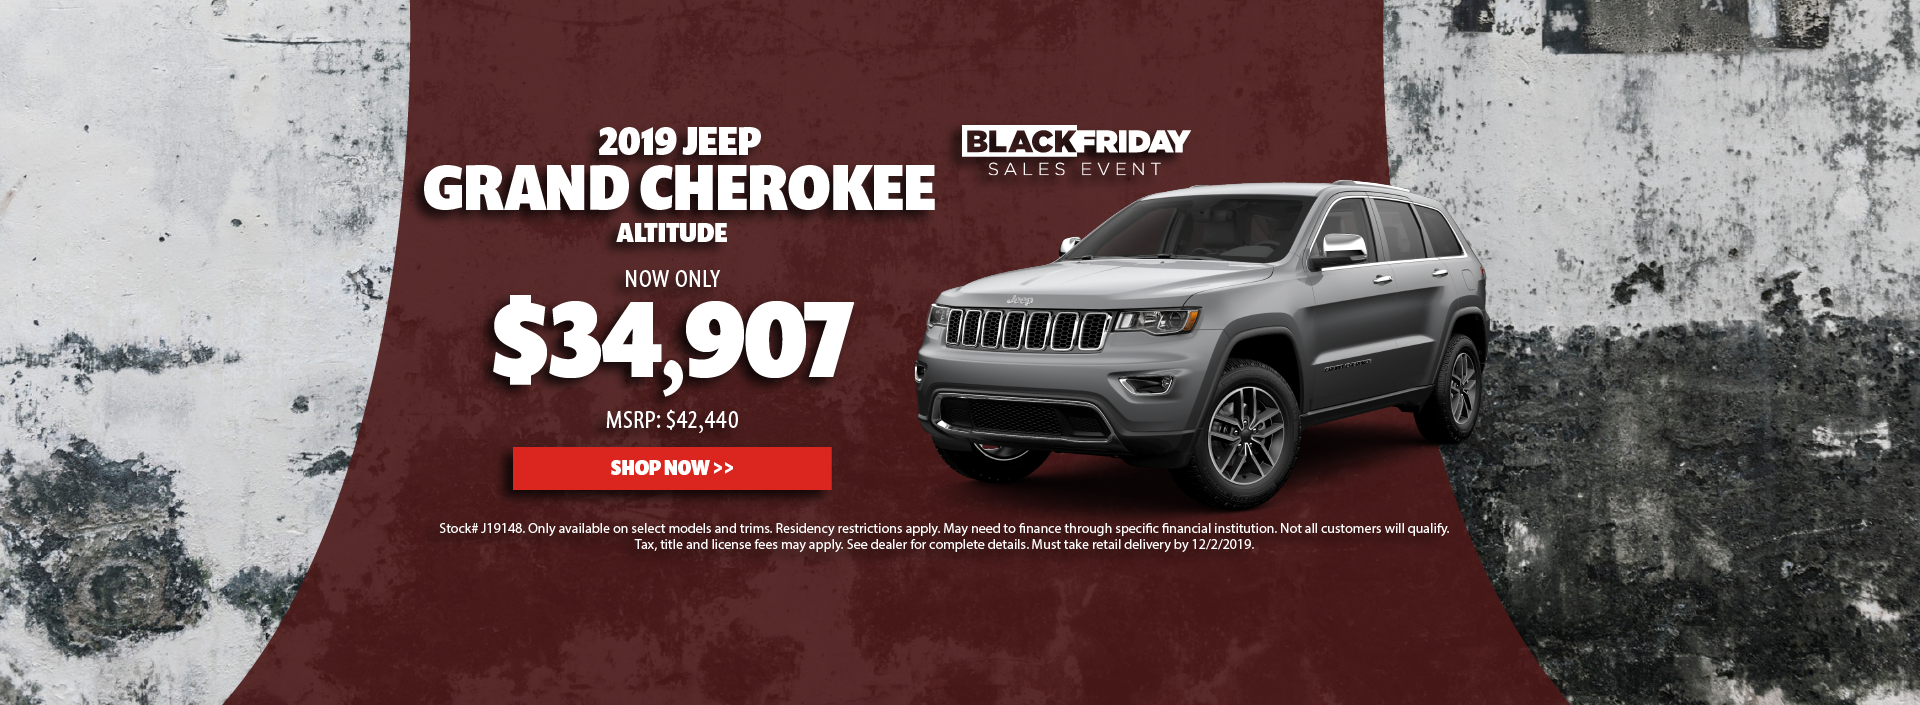 2019 Jeep Grand Cherokee Offer